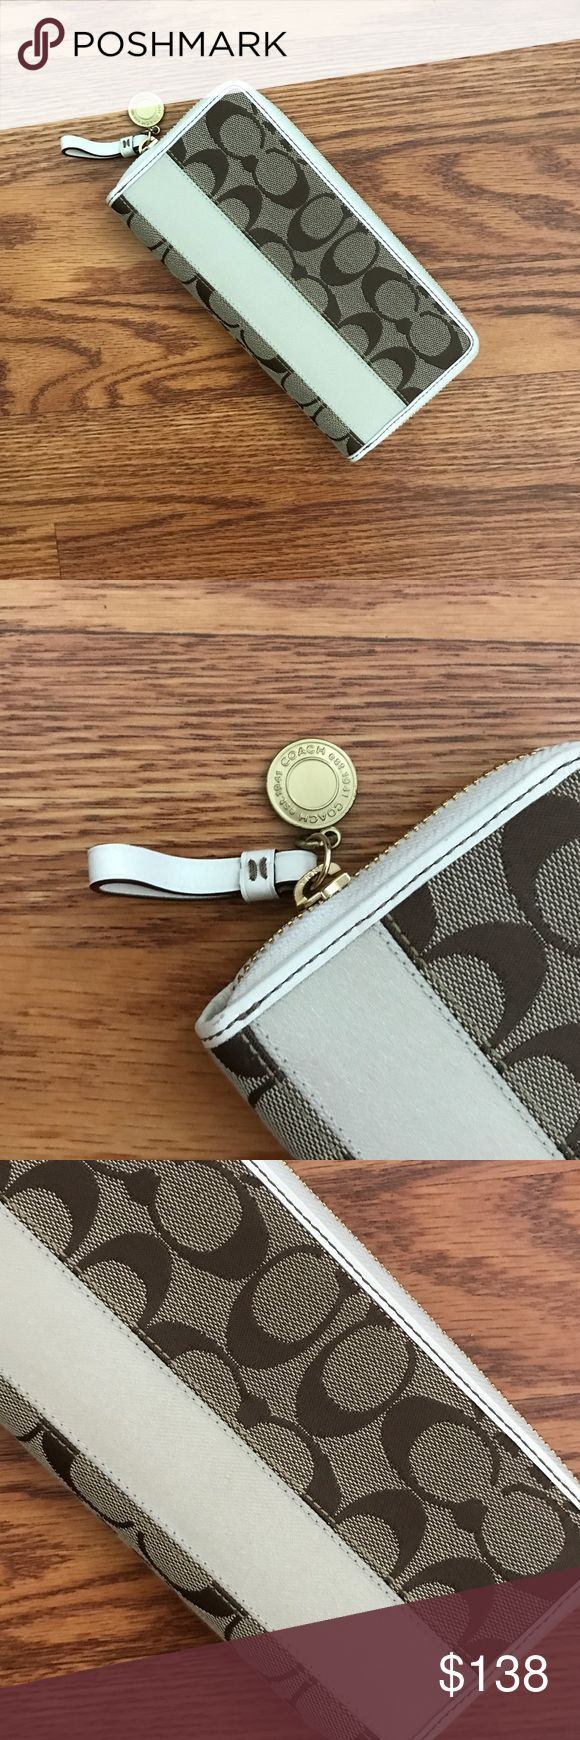 "Coach Legacy Signature Stripe Zip Around Wallet Coach Legacy Signature Stripe Zip Around Wallet in Khaki. NWOT. Authentic Coach wallet with goldtone hardware & khaki accents. Zip around closure. Interior is cream colored leather with the famous Legacy Stripe lining. 12 credit card slots, 3 billfold slots and a center zip coin pocket. Measurements: 8""L x 4""H x 1""D. Never been used excellent condition. Feel free to ask questions. No trades. Coach Bags Wallets"